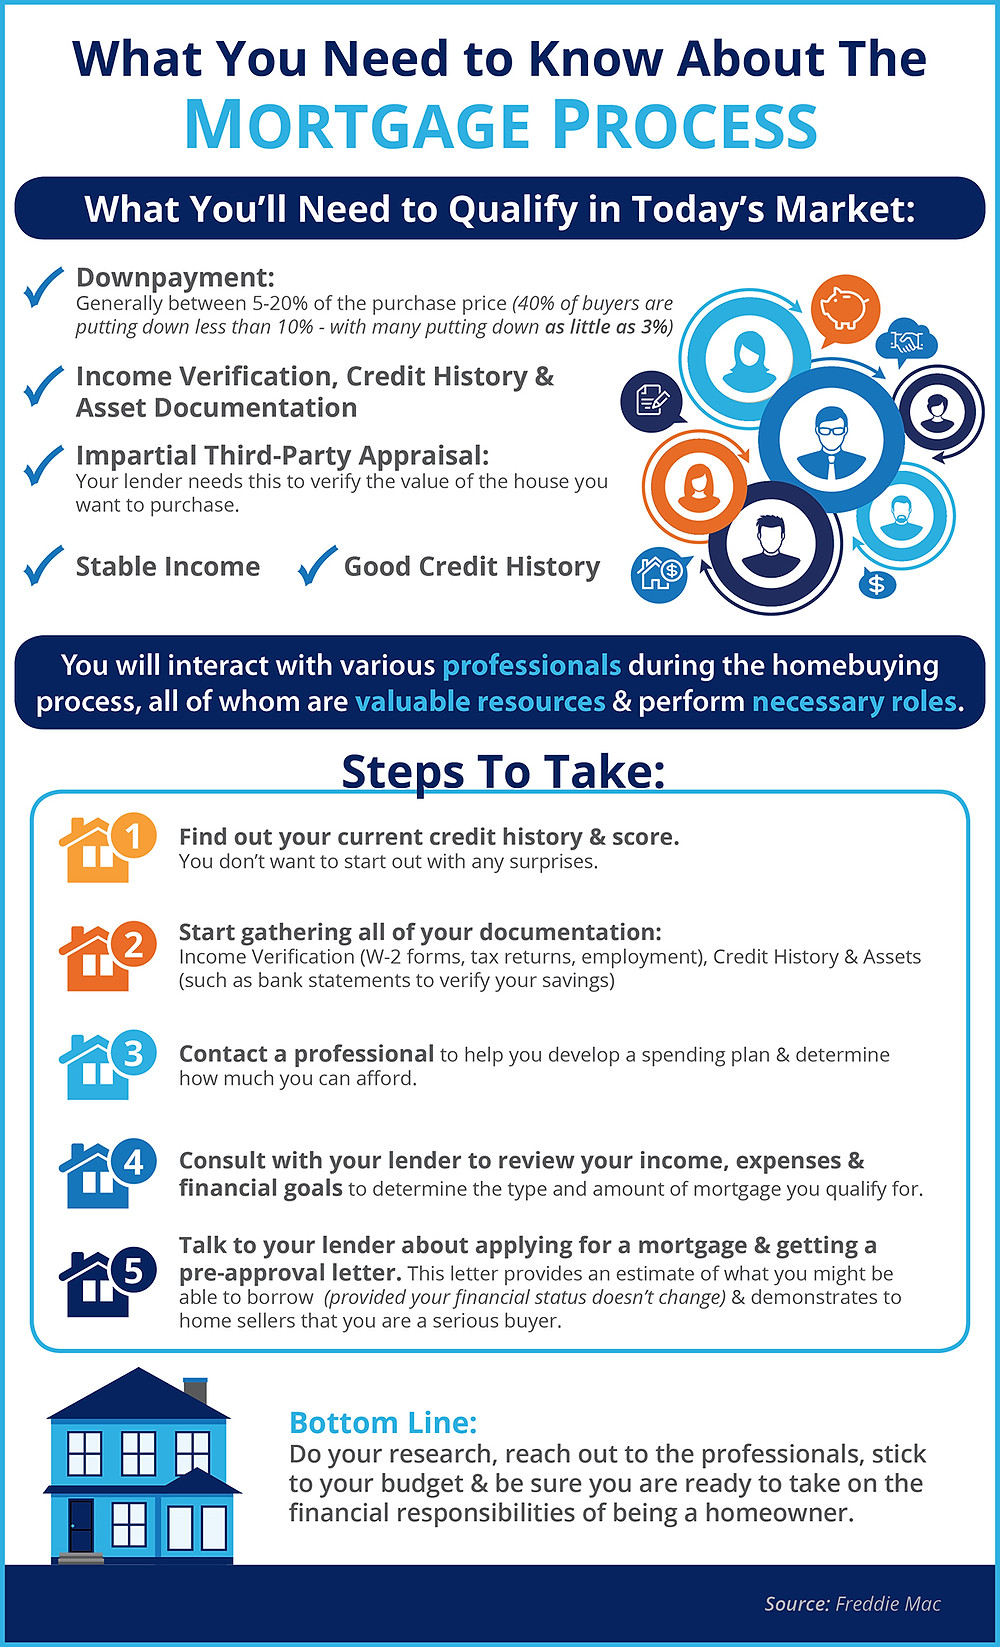 What You Need to Know About the Mortgage Process   Simplifying The Market